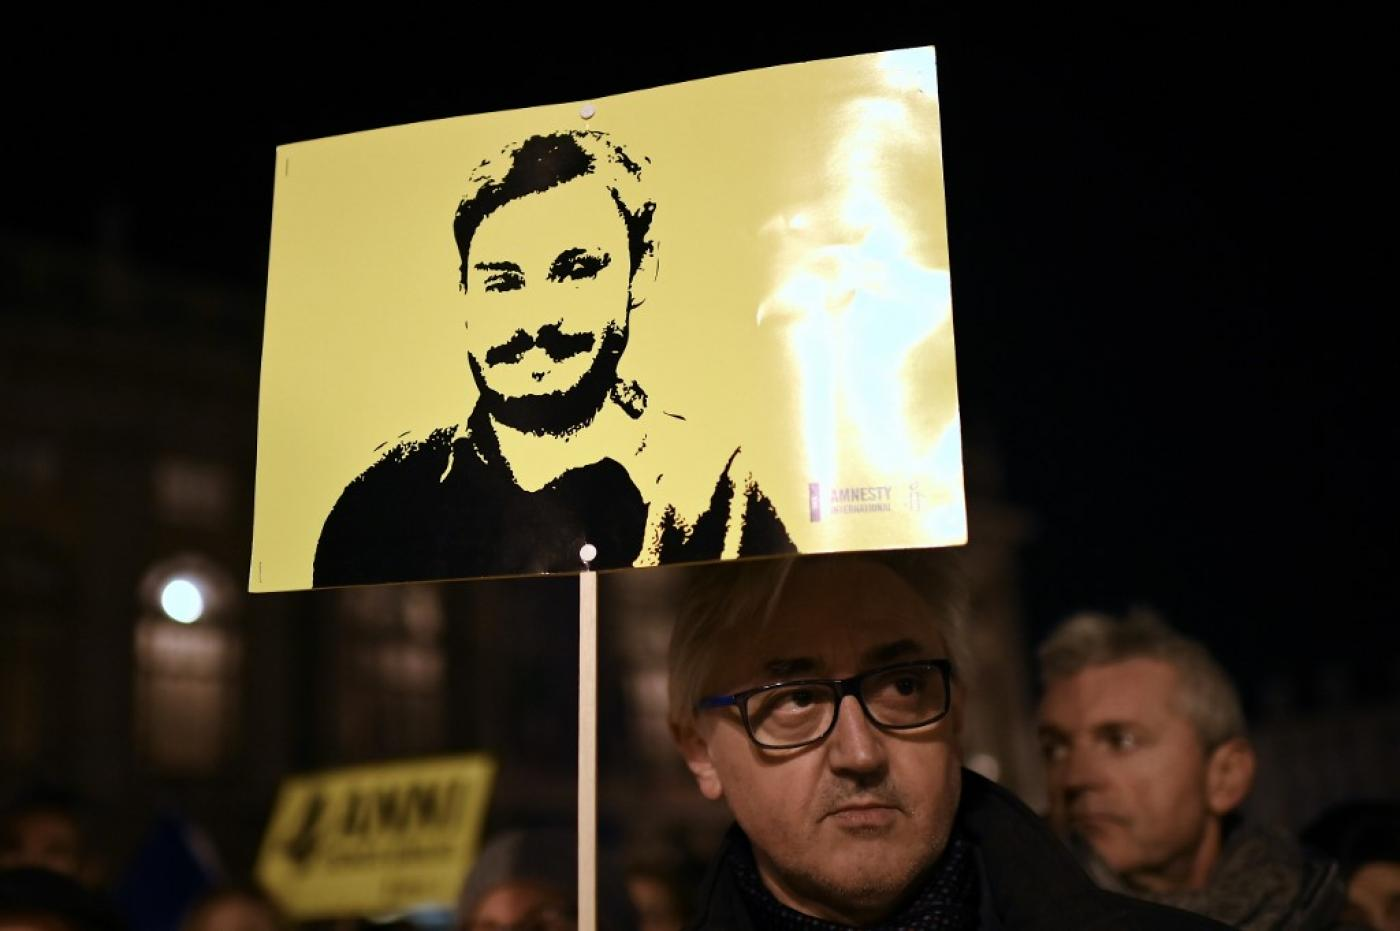 The trial will likely reveal more details of Regeni's horrific death, with his body badly mutilated by torture.